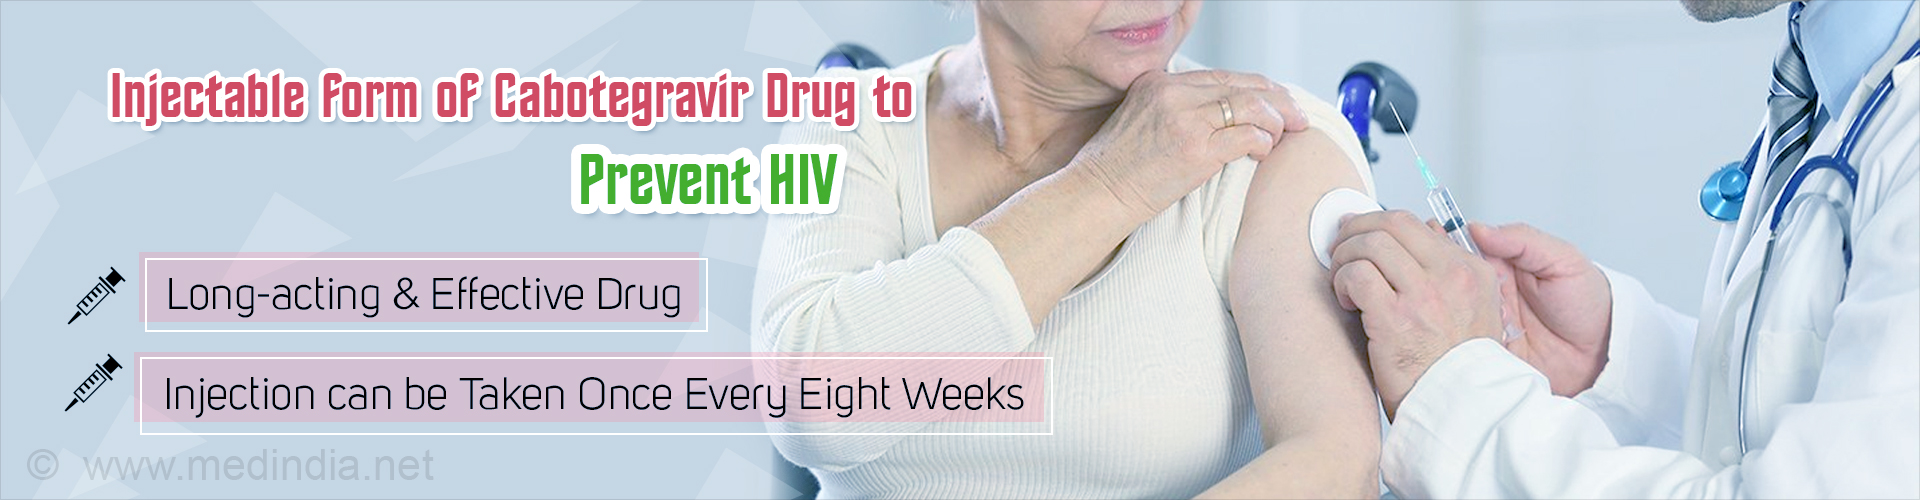 New Injectable Form of Cabotegravir Drug To Prevent HIV